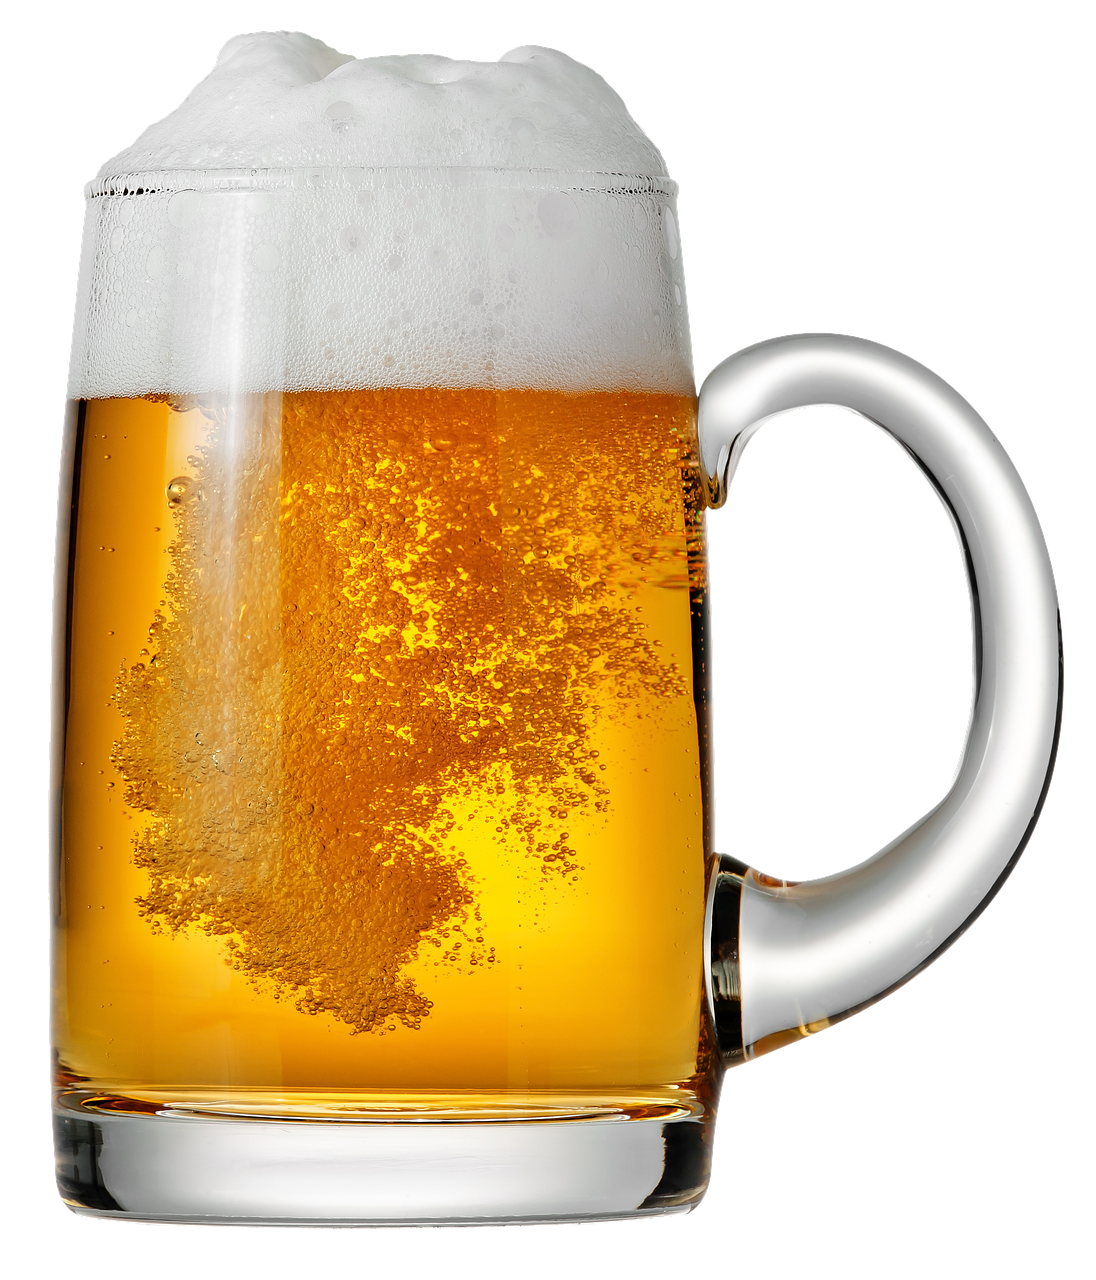 4 Health Benefits Of Beer